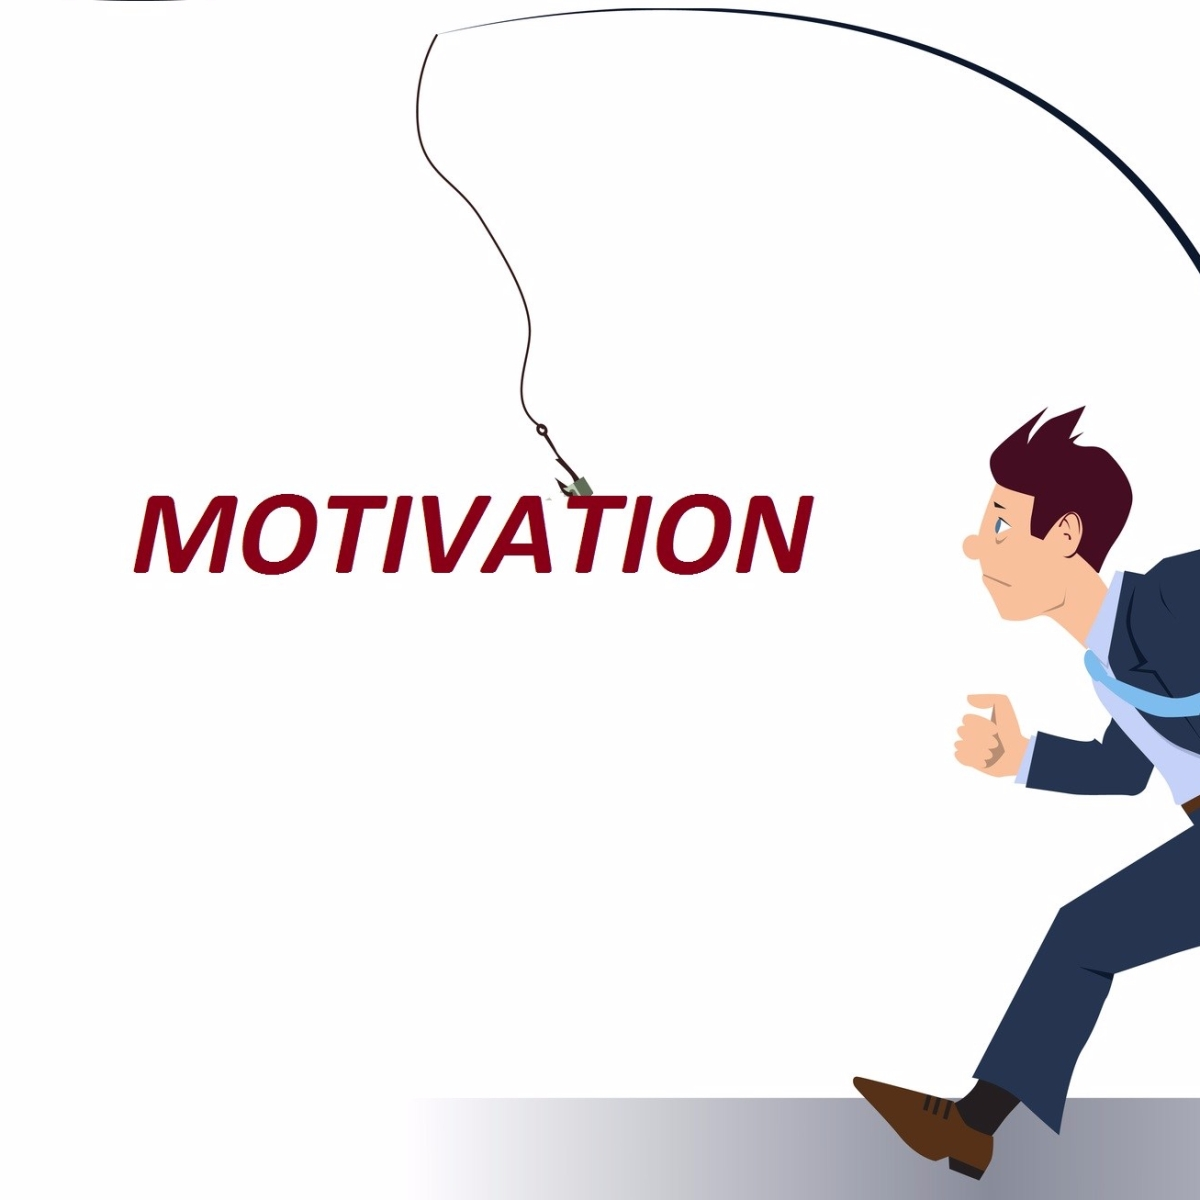 Motivation – The Fool's Bet